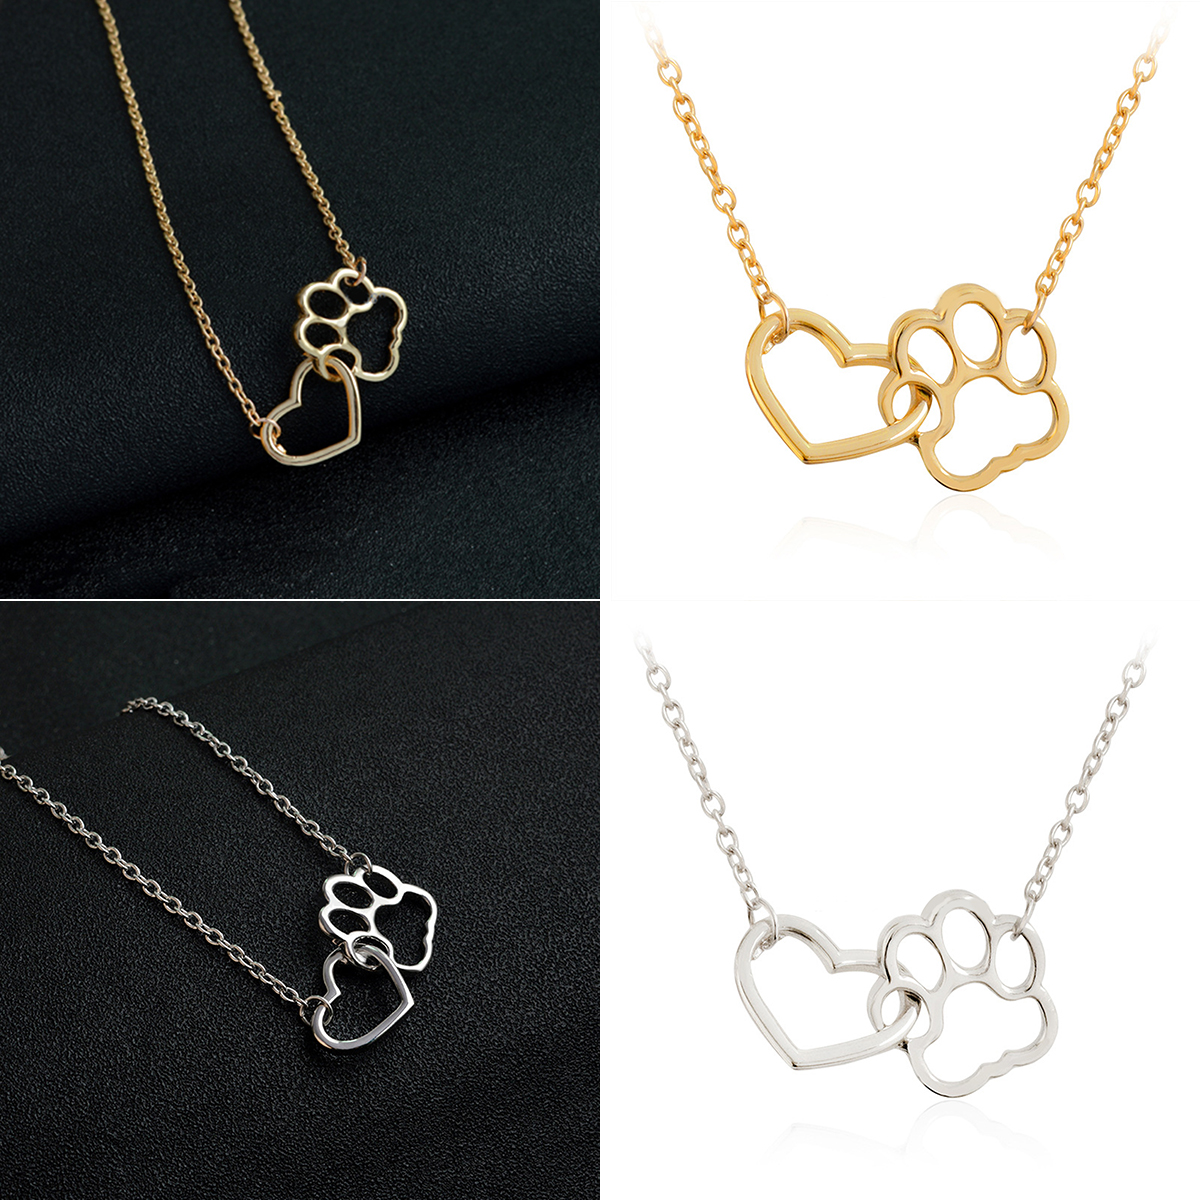 SALE HOLLOW PET PAW FOOTPRINT NECKLACES FOR CAT LOVERS SALE HOLLOW PET PAW FOOTPRINT NECKLACES FOR CAT LOVERS-Cat Jewelry-Free Shipping SALE HOLLOW PET PAW FOOTPRINT NECKLACES FOR CAT LOVERS-Cat Jewelry-Free Shipping HTB12QY8RpXXXXclXVXXq6xXFXXXO